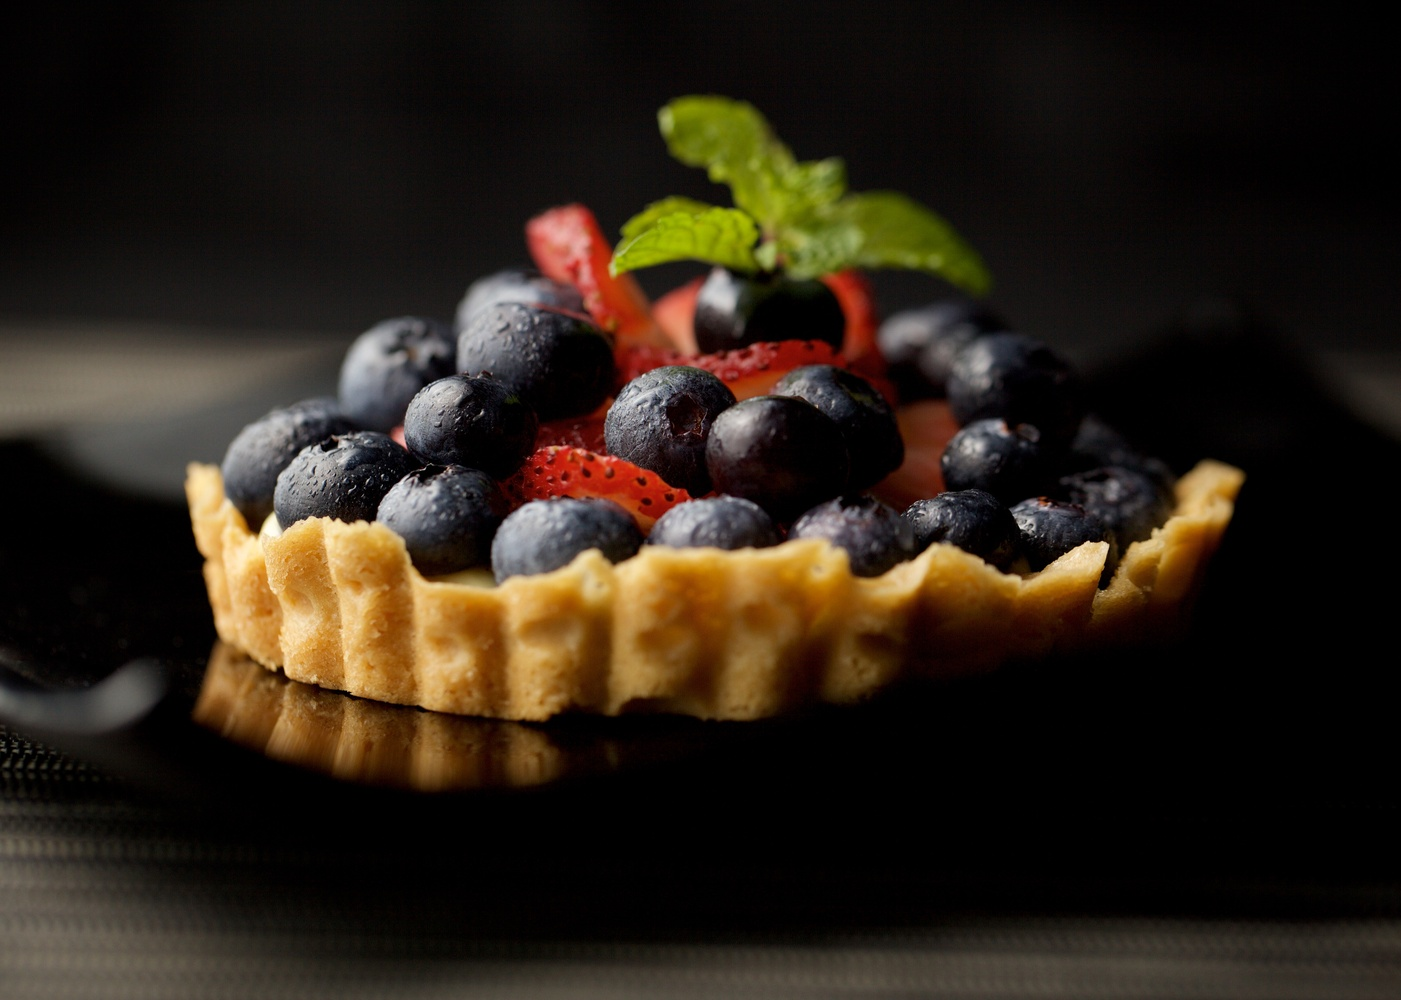 Blue Berry by Dos Imagery